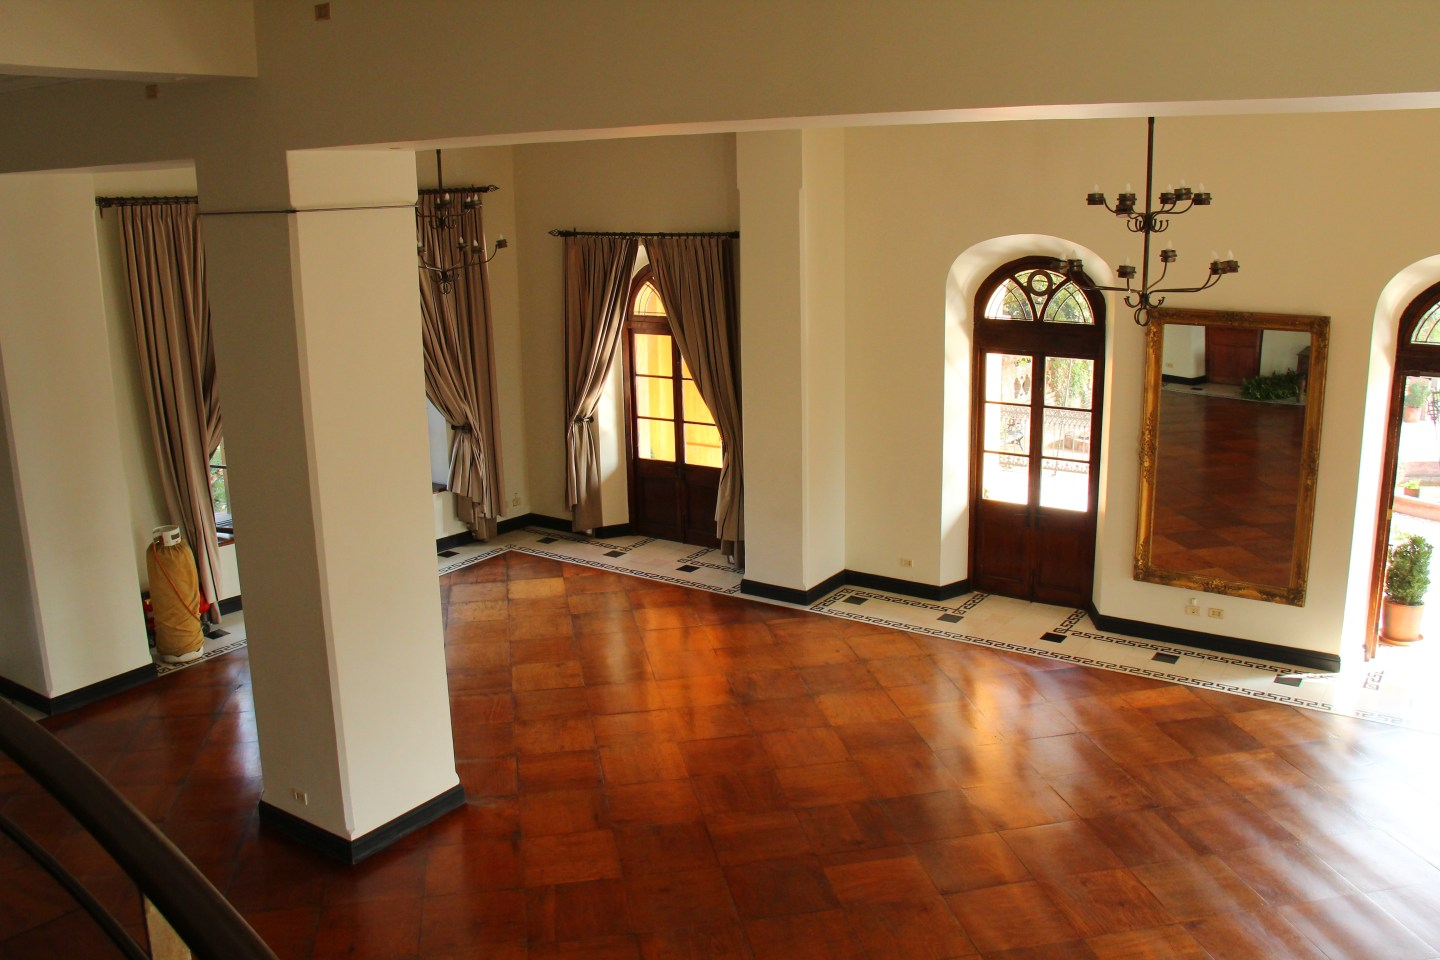 photograph of a hallway with wooden floors and doors